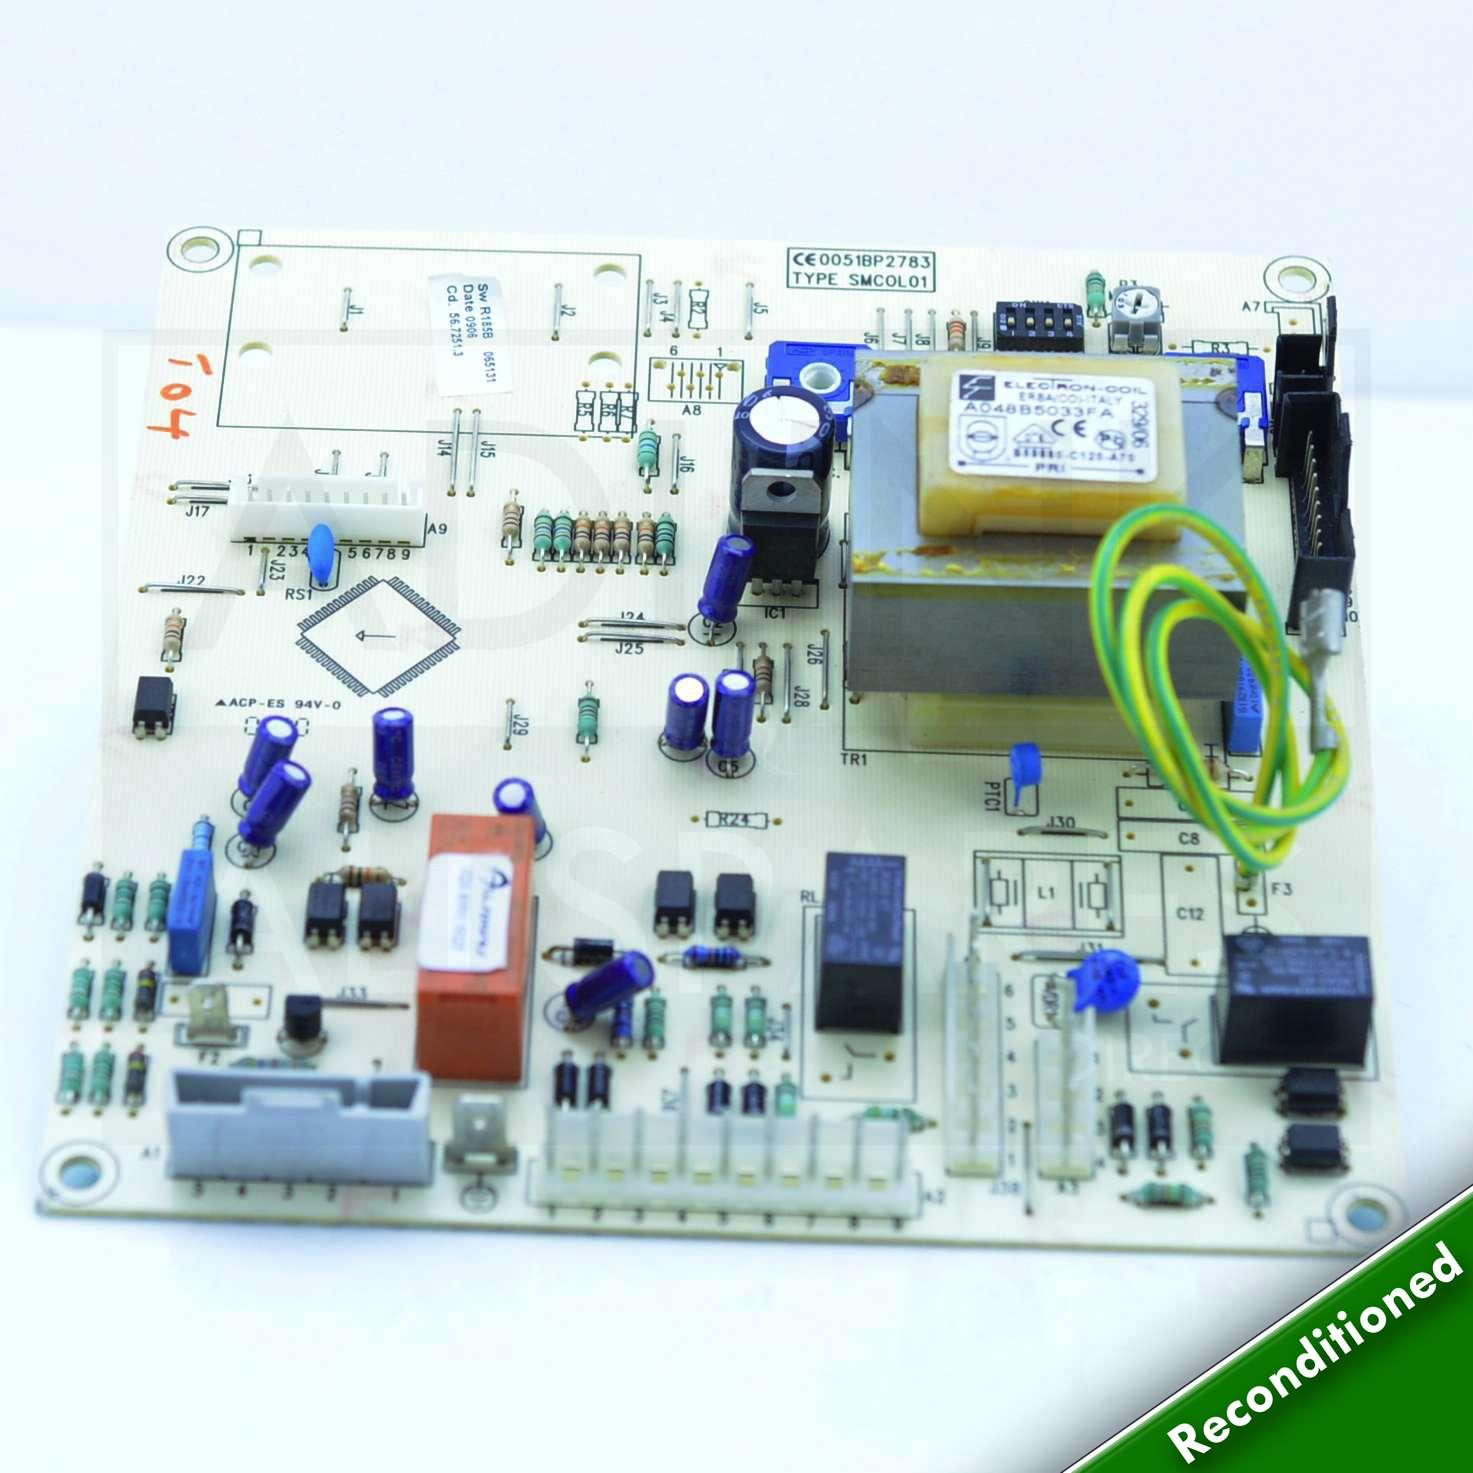 Main Combi 30 He B Band Boiler Pcb 5112380 Printed Circuit Board Supply Domestic And Offshore